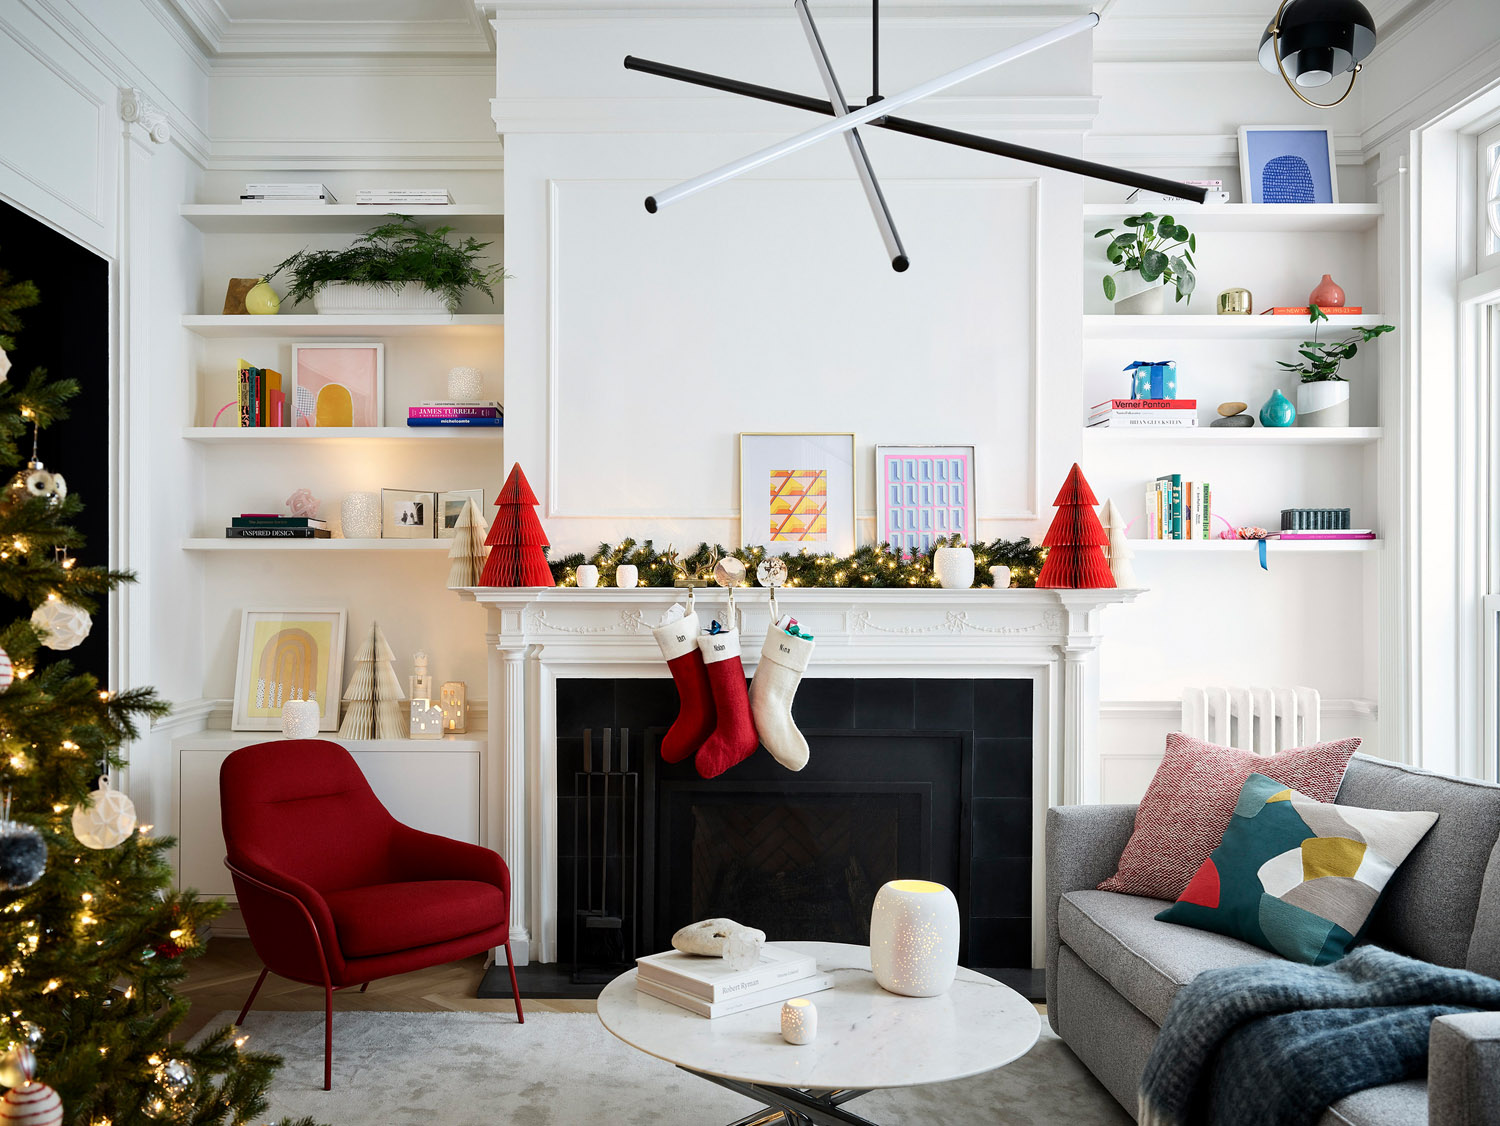 Maxwell Tielman - Colorful Modern Holiday In A Pre-War Brooklyn Brownstone